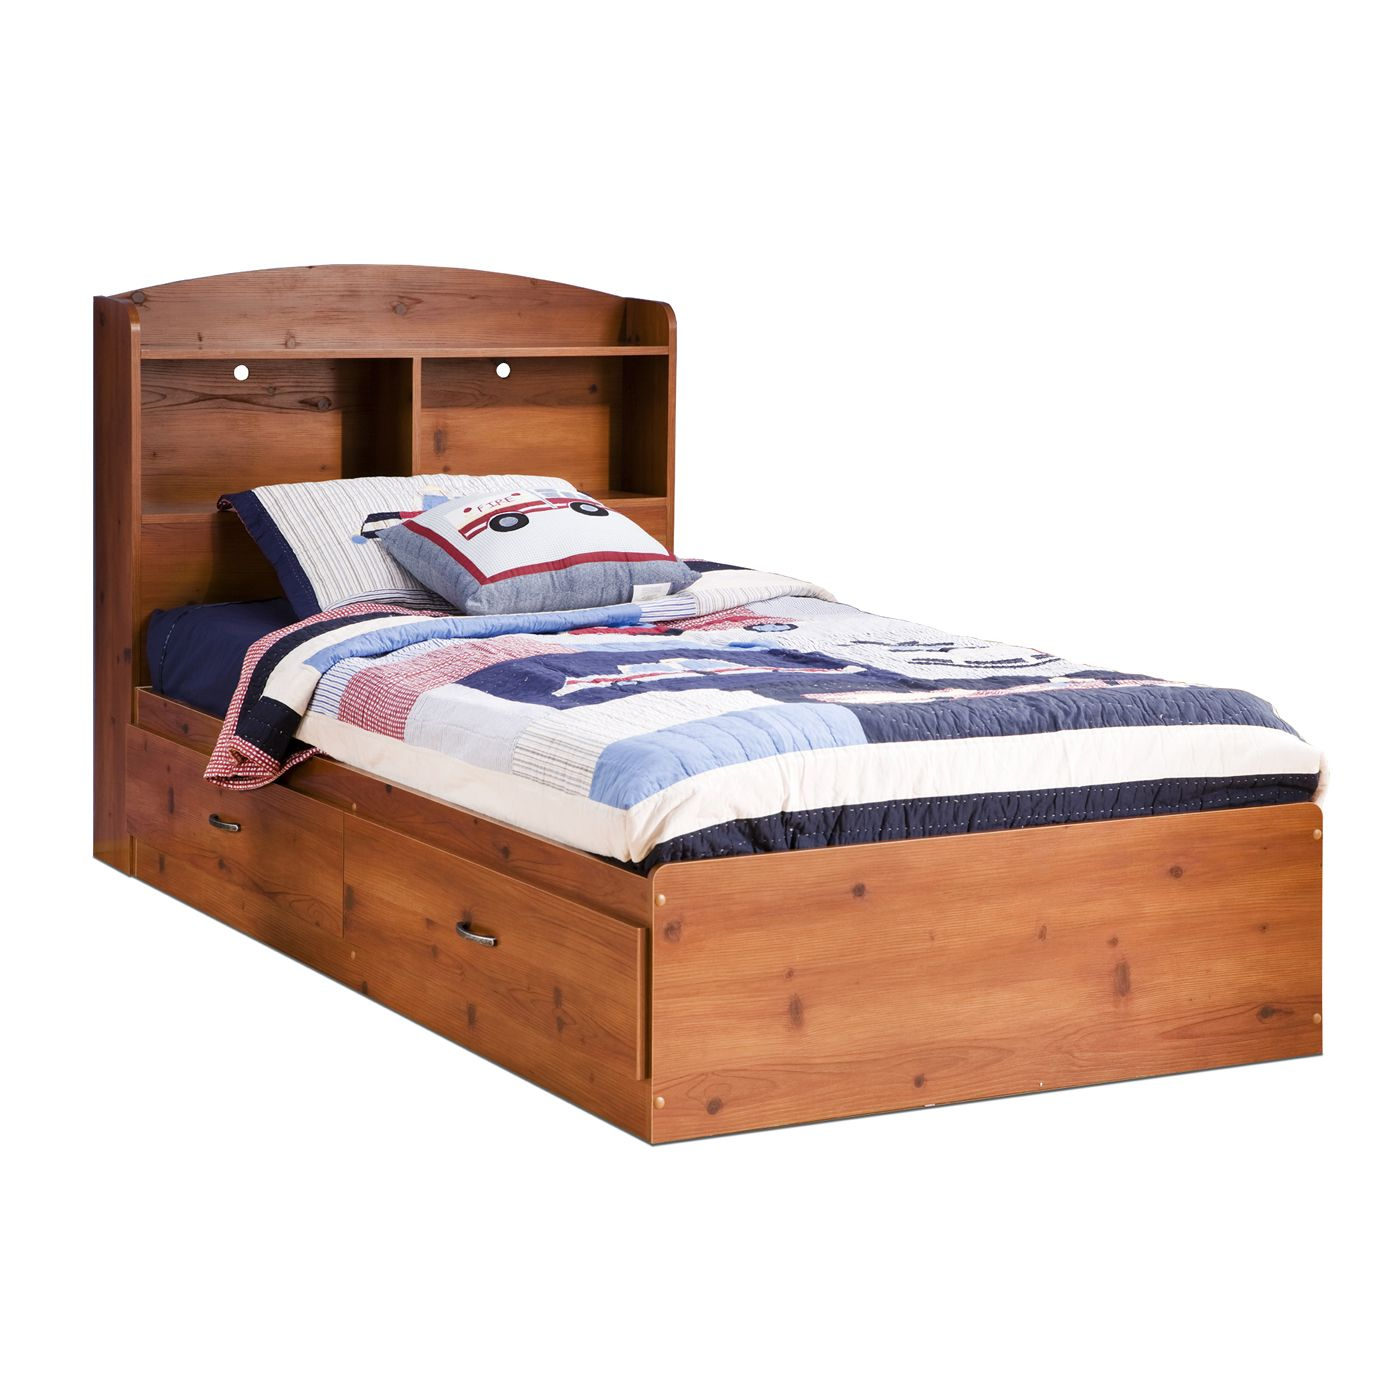 South Shore Furniture Logik Mates Bed with Bookcase Headboard   Lowe s  CanadaSouth Shore Furniture Logik Mates Bed with Bookcase Headboard  . Pine Bedroom Sets Canada. Home Design Ideas